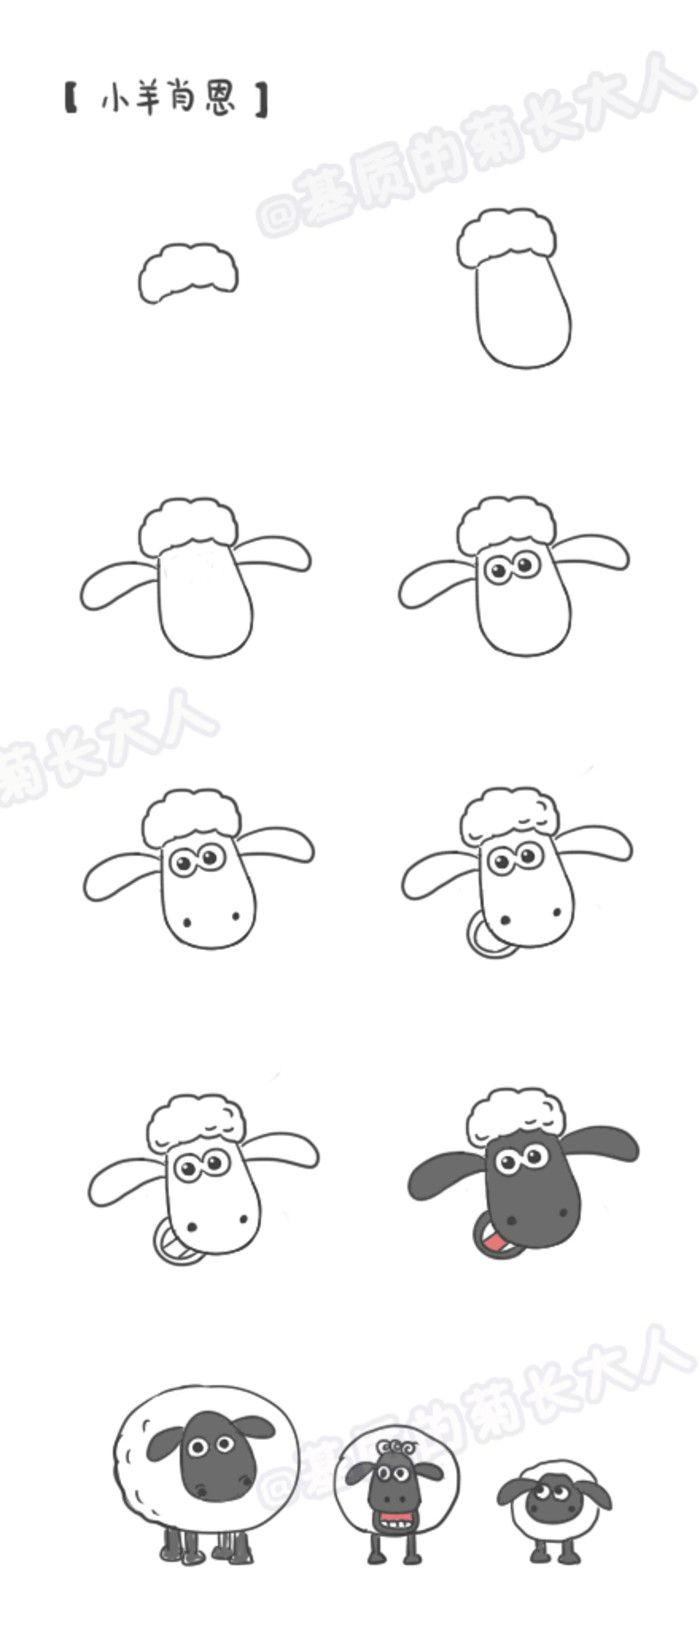 How To Draw Shaun The Sheep Unterricht Pinterest Draw Kawaii